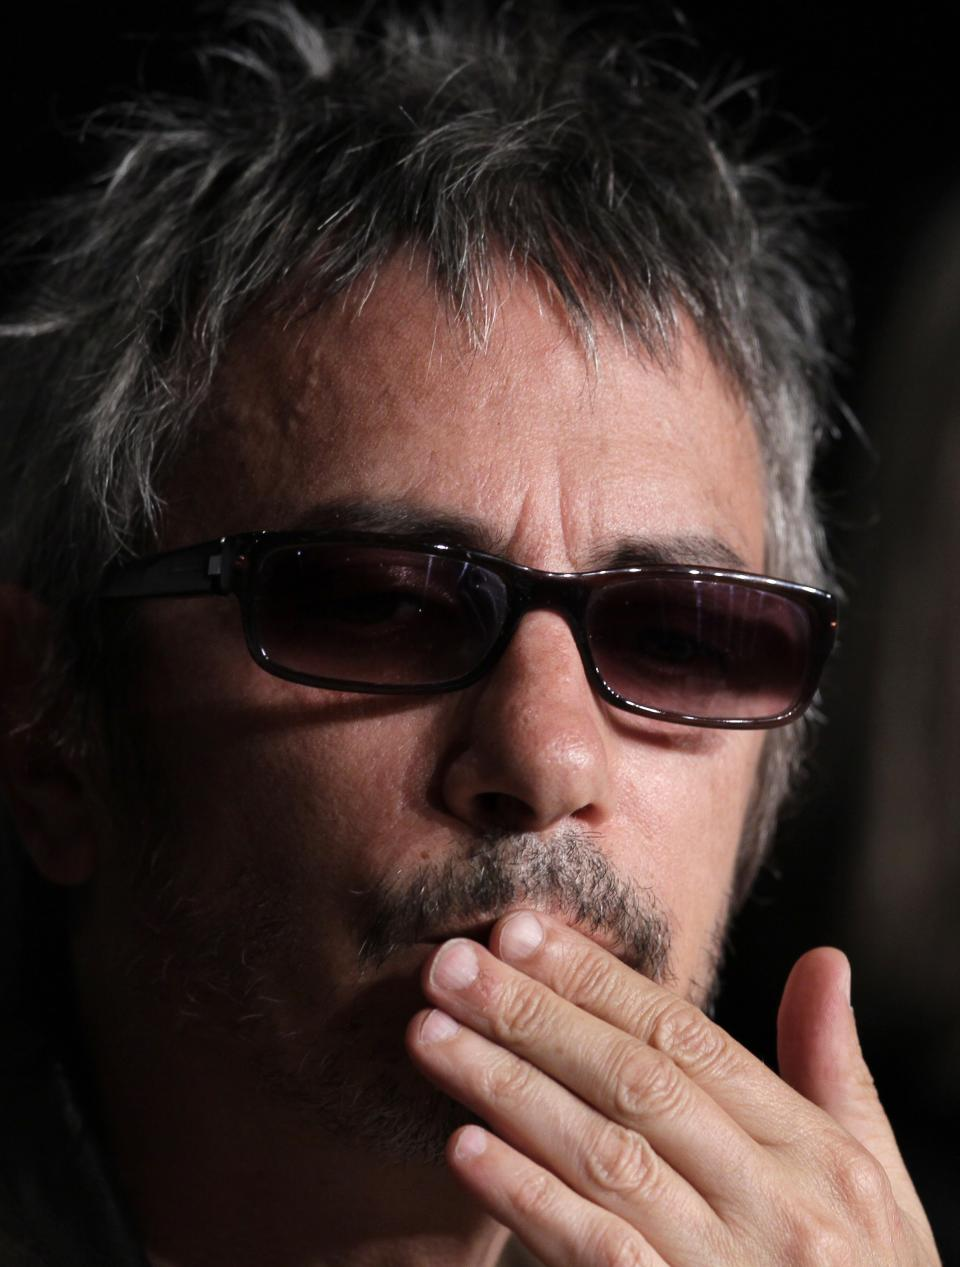 Director Leos Carax gestures during a press conference for Holy Motors at the 65th international film festival, in Cannes, southern France, Wednesday, May 23, 2012. (AP Photo/Francois Mori)